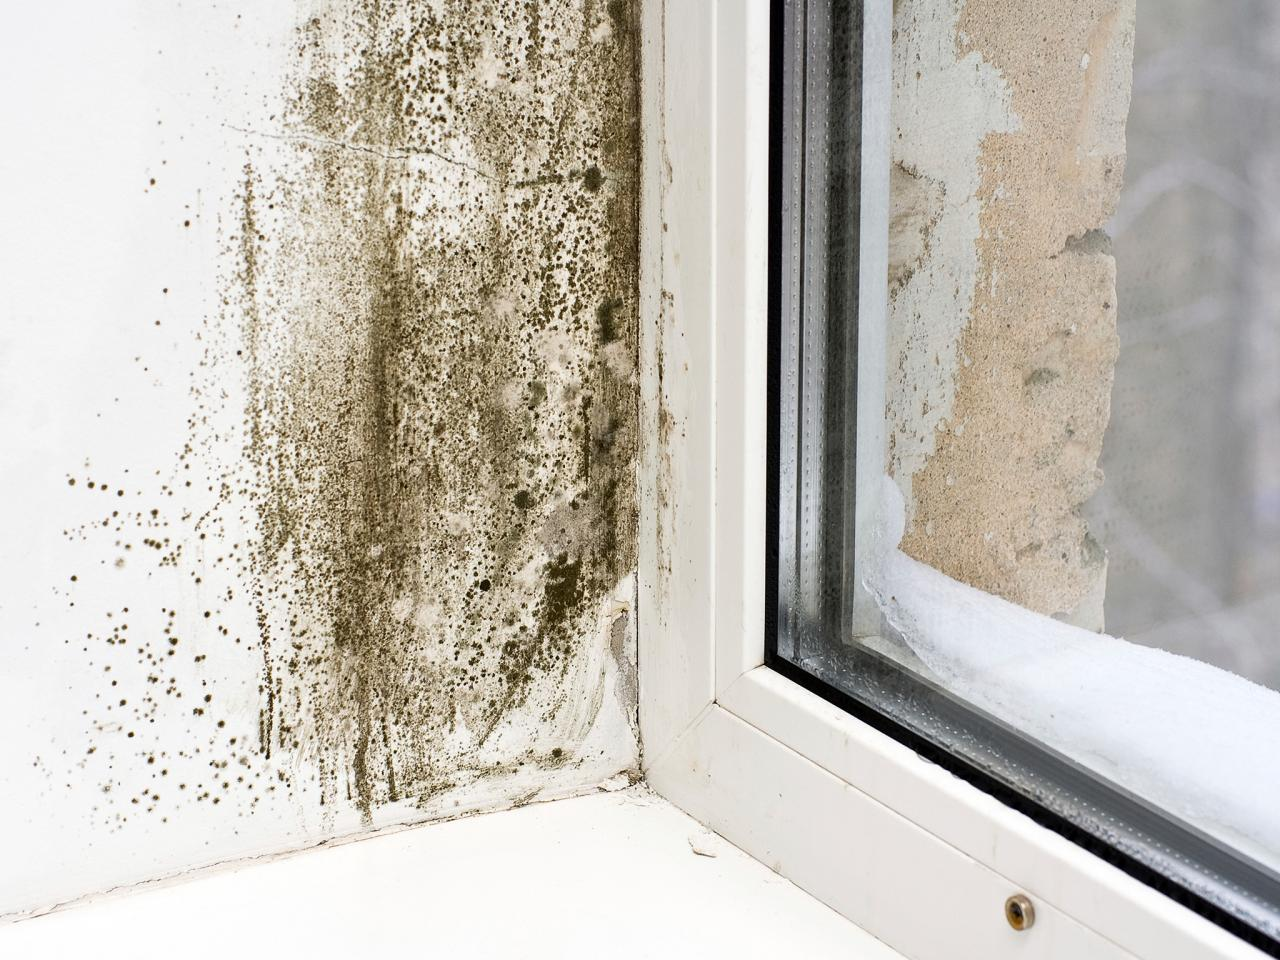 mold by window